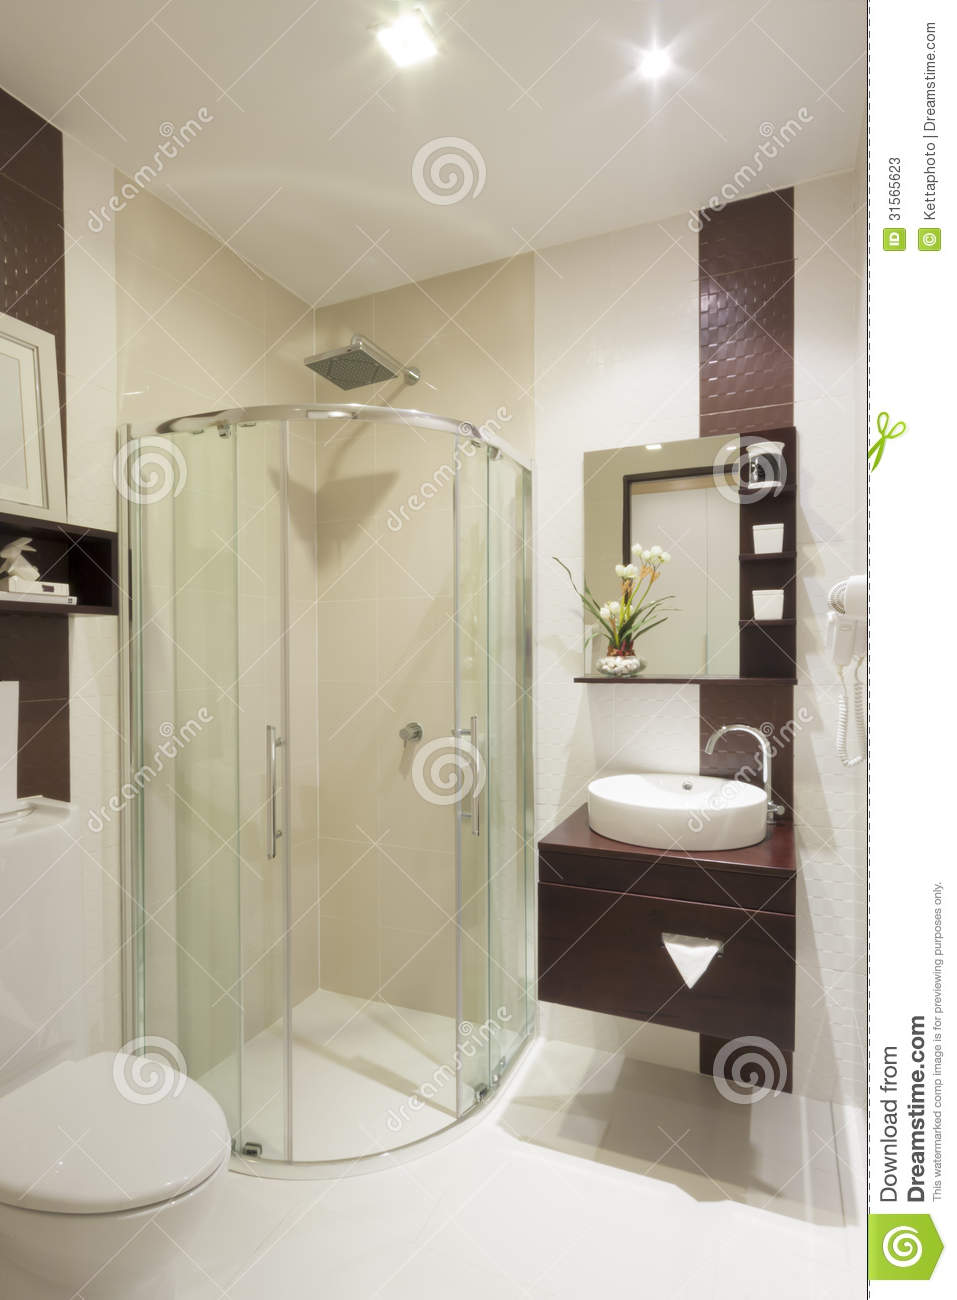 Luxury Bathroom Stock Photos Image 31565623